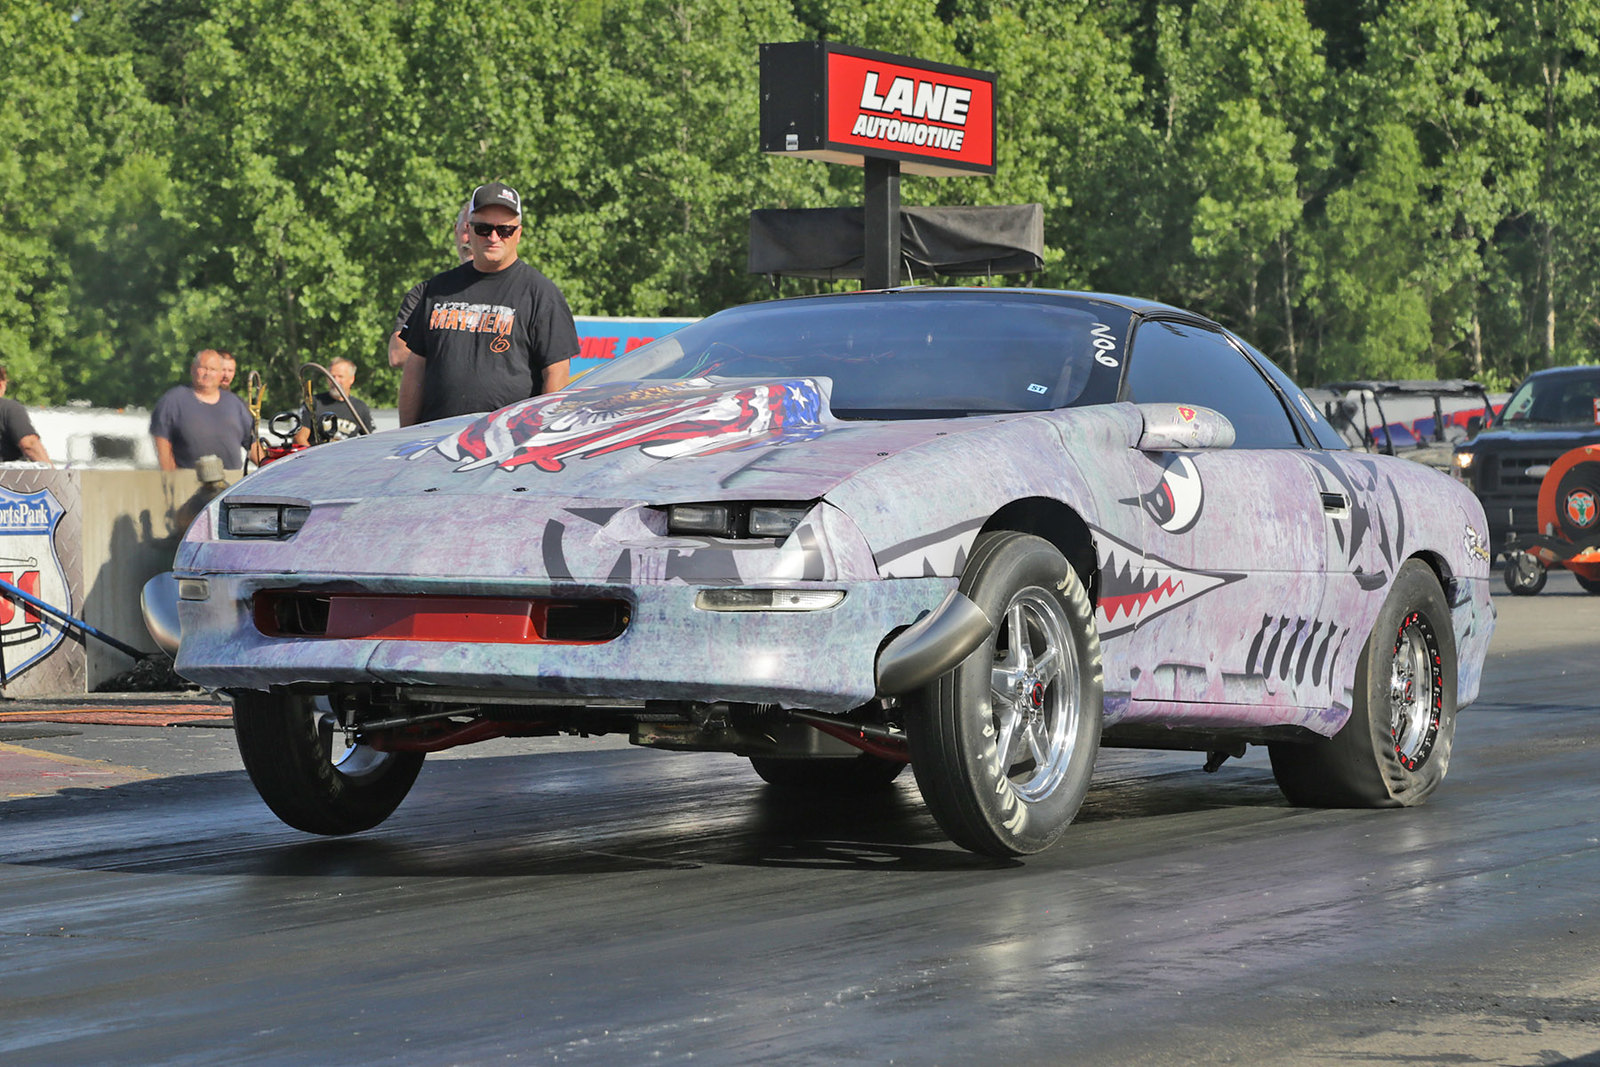 Motor State KnockOut No-Prep Drag Event held at US 131 Motorsports Park in Martin, Michigan